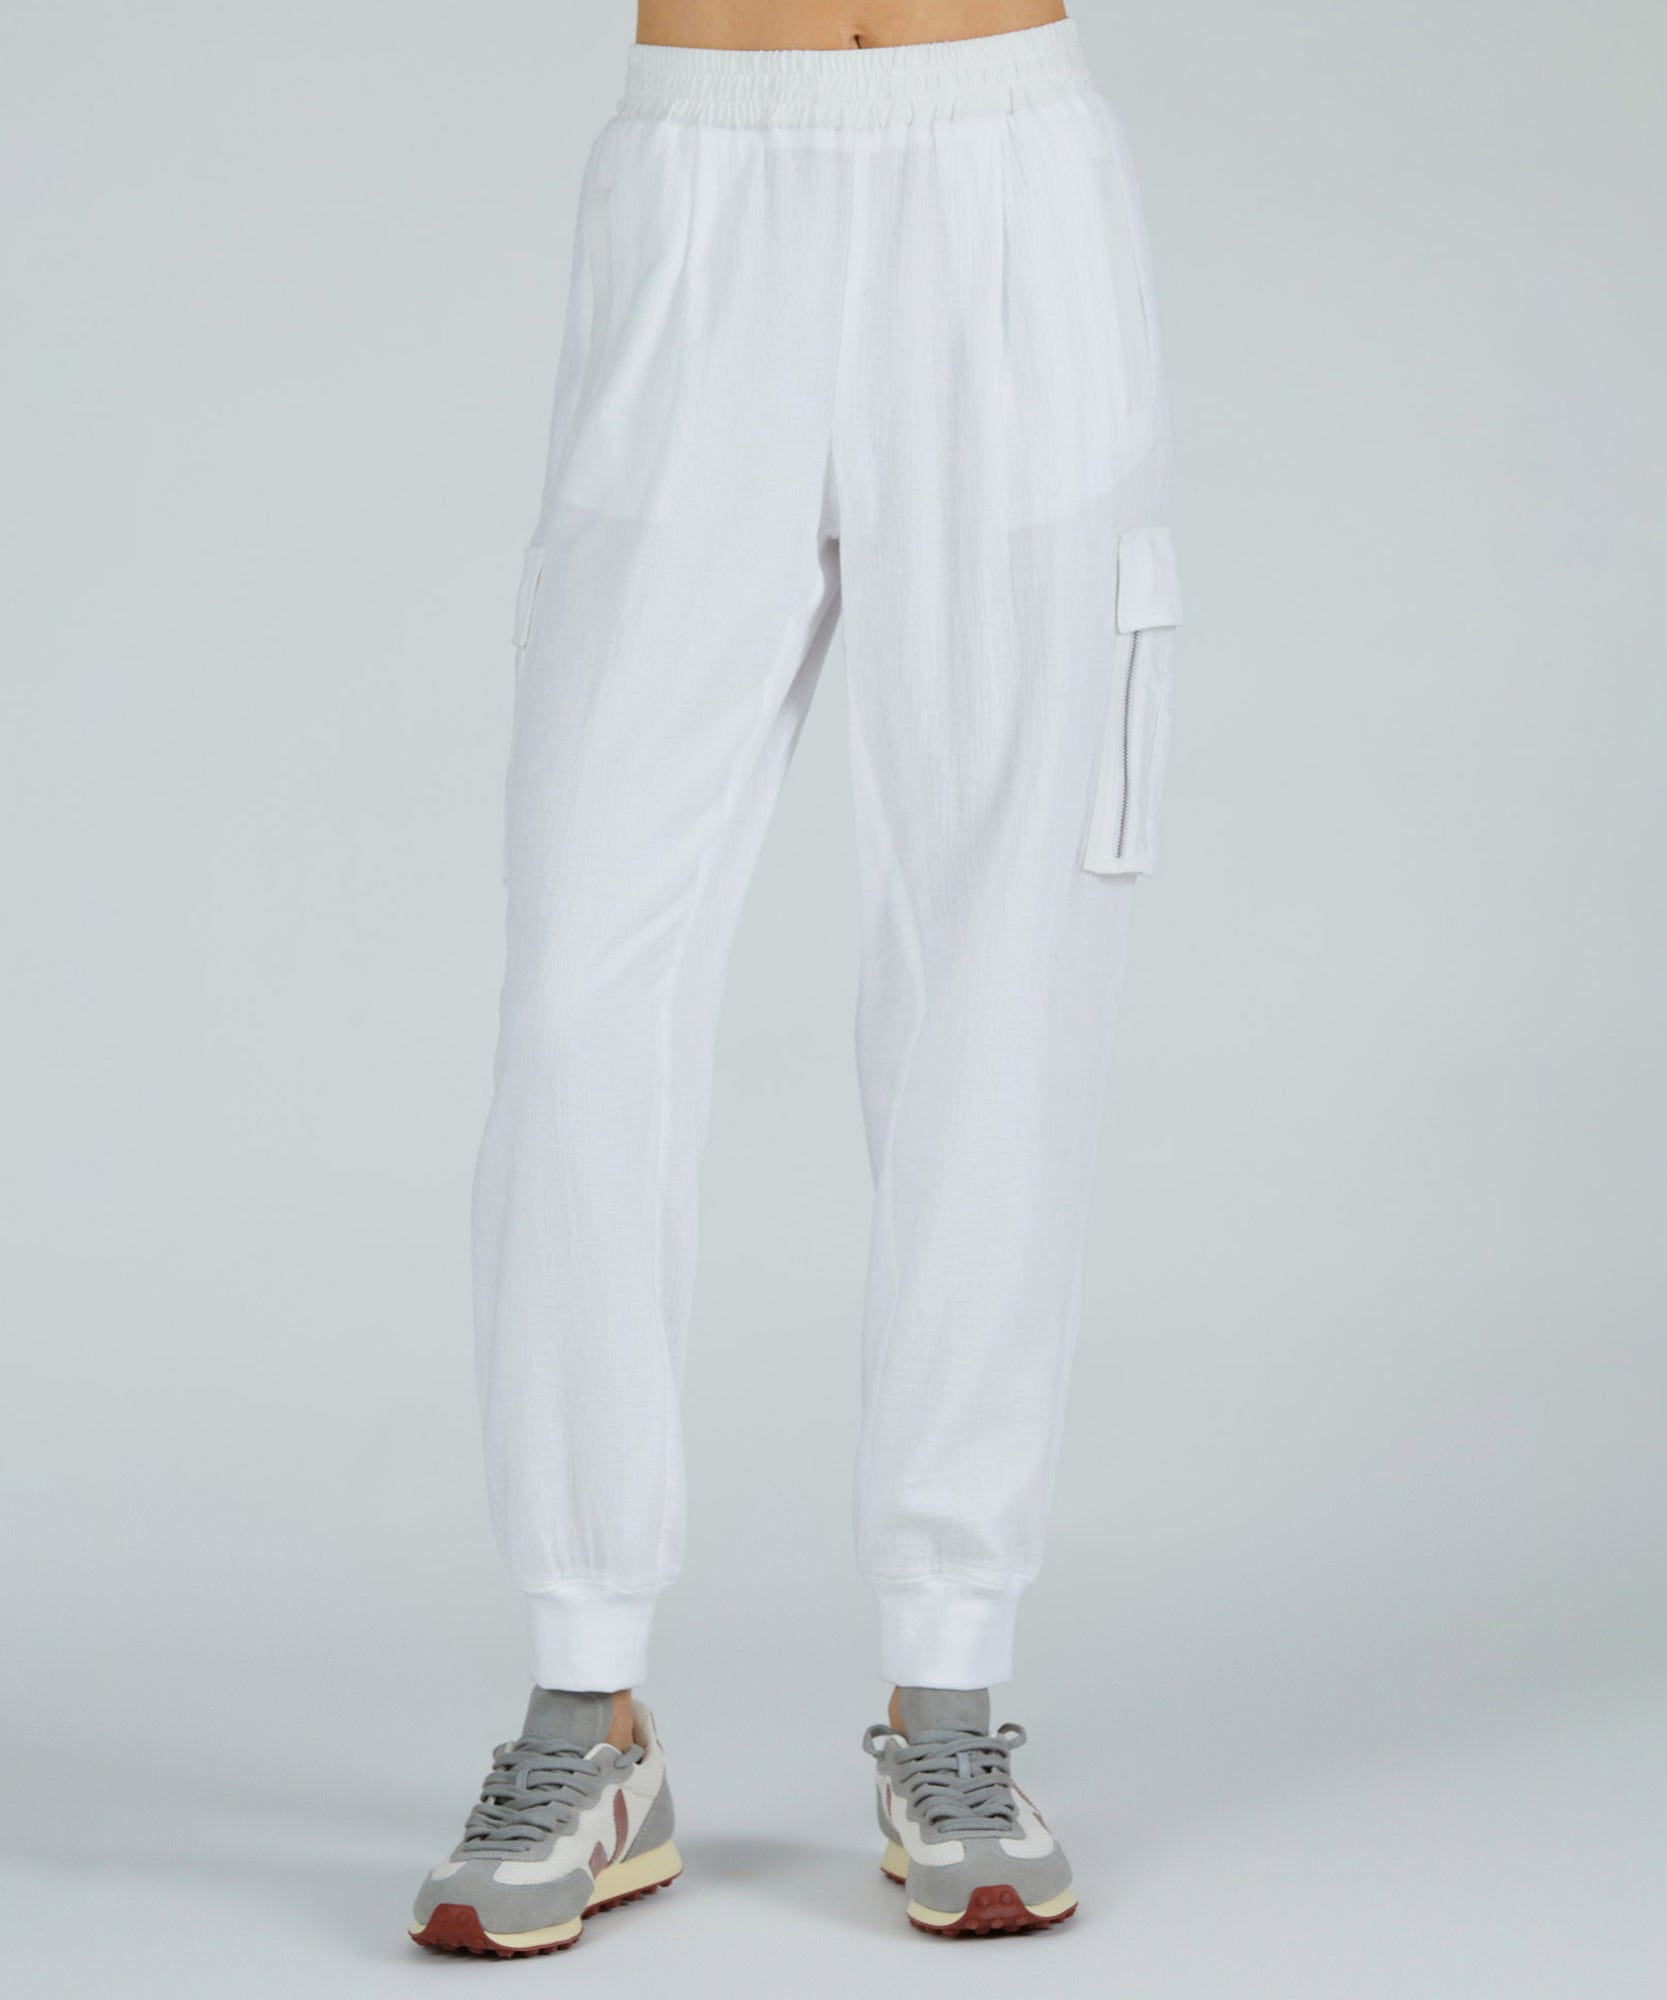 Women's Pant by ATM Anthony Thomas Melillo